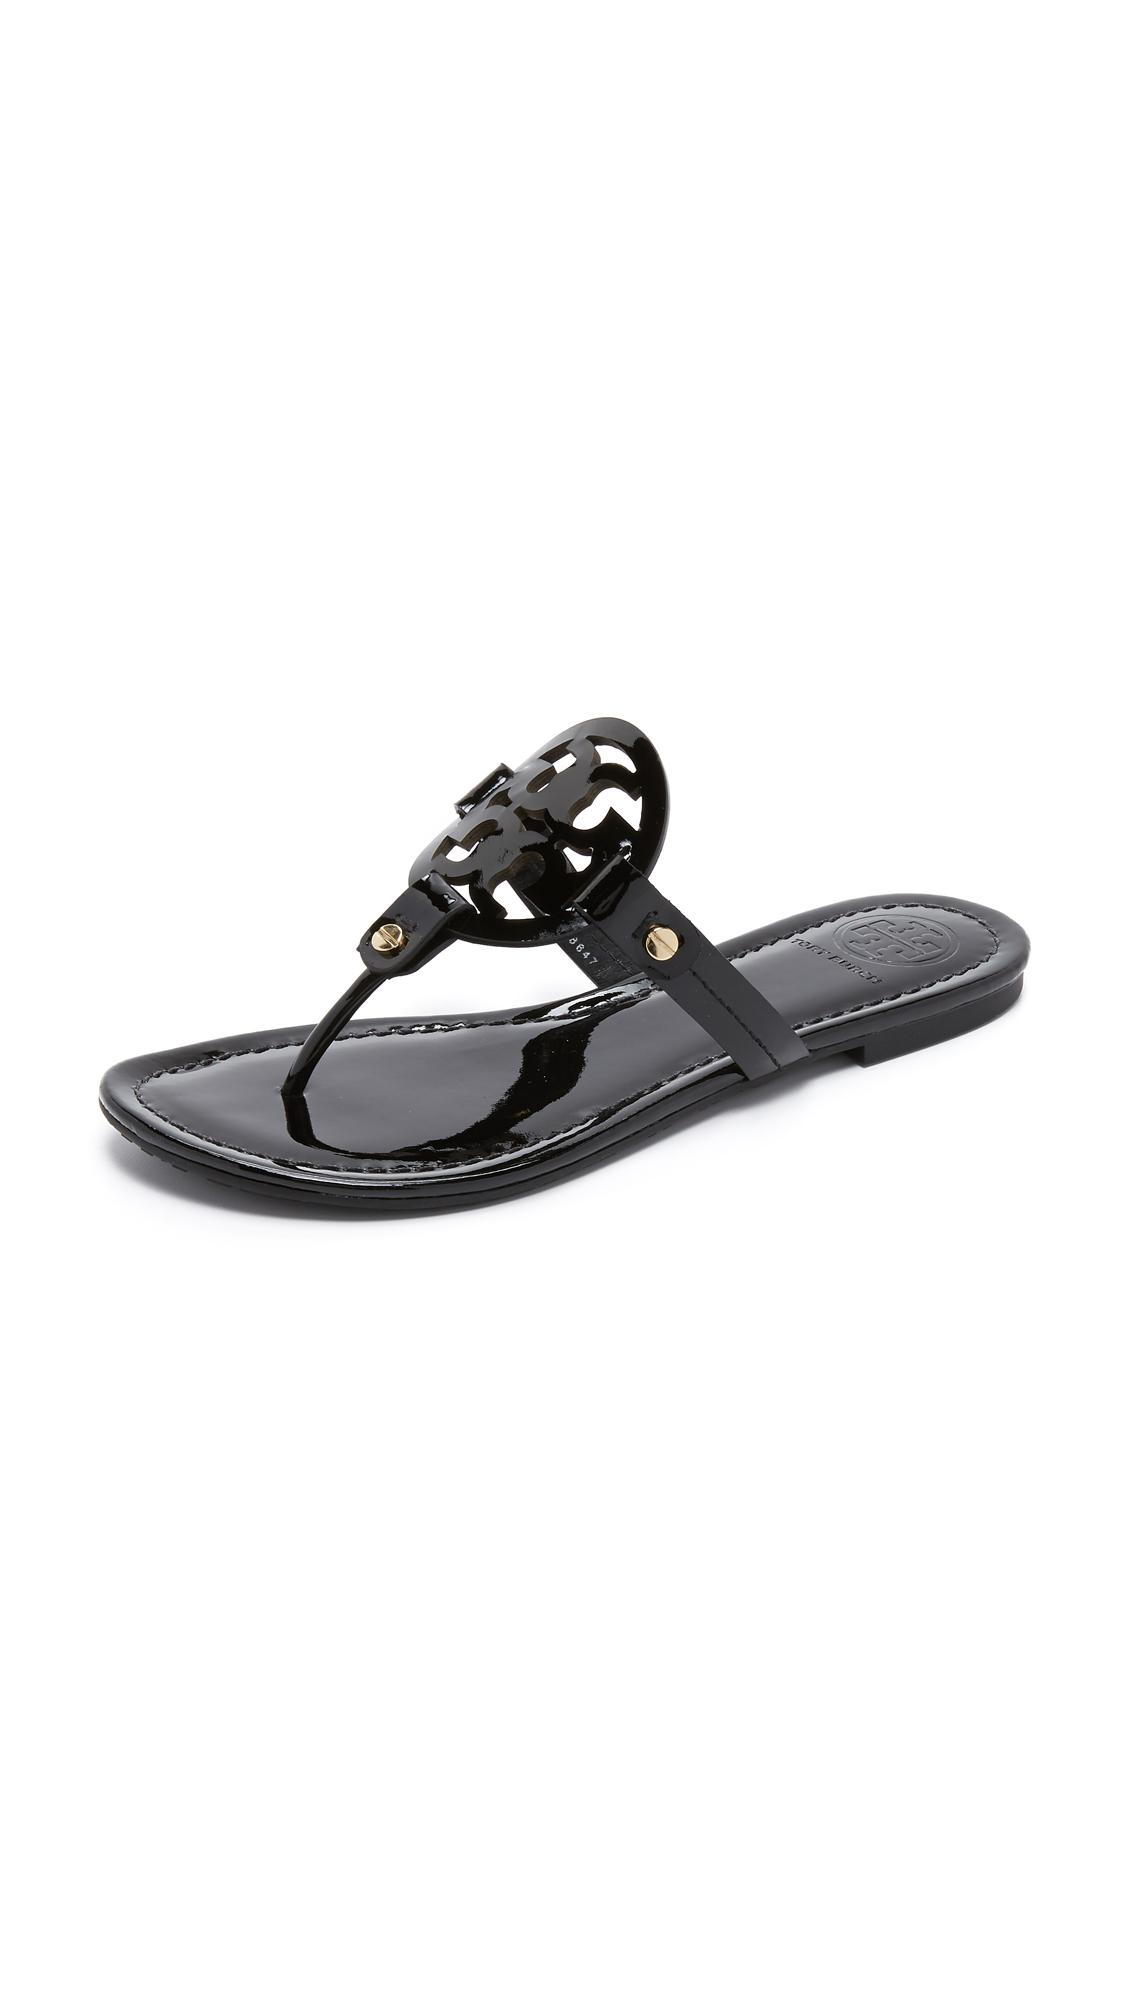 Women's Tory Burch Sandals | willbust.ml has been visited by K+ users in the past monthPosh Protect· day priority shipping· Fashion at 70% offStyles: Reva Flats, Miller Sandals, Robinson Collection, Espadrilles, Clutches & Wallets.